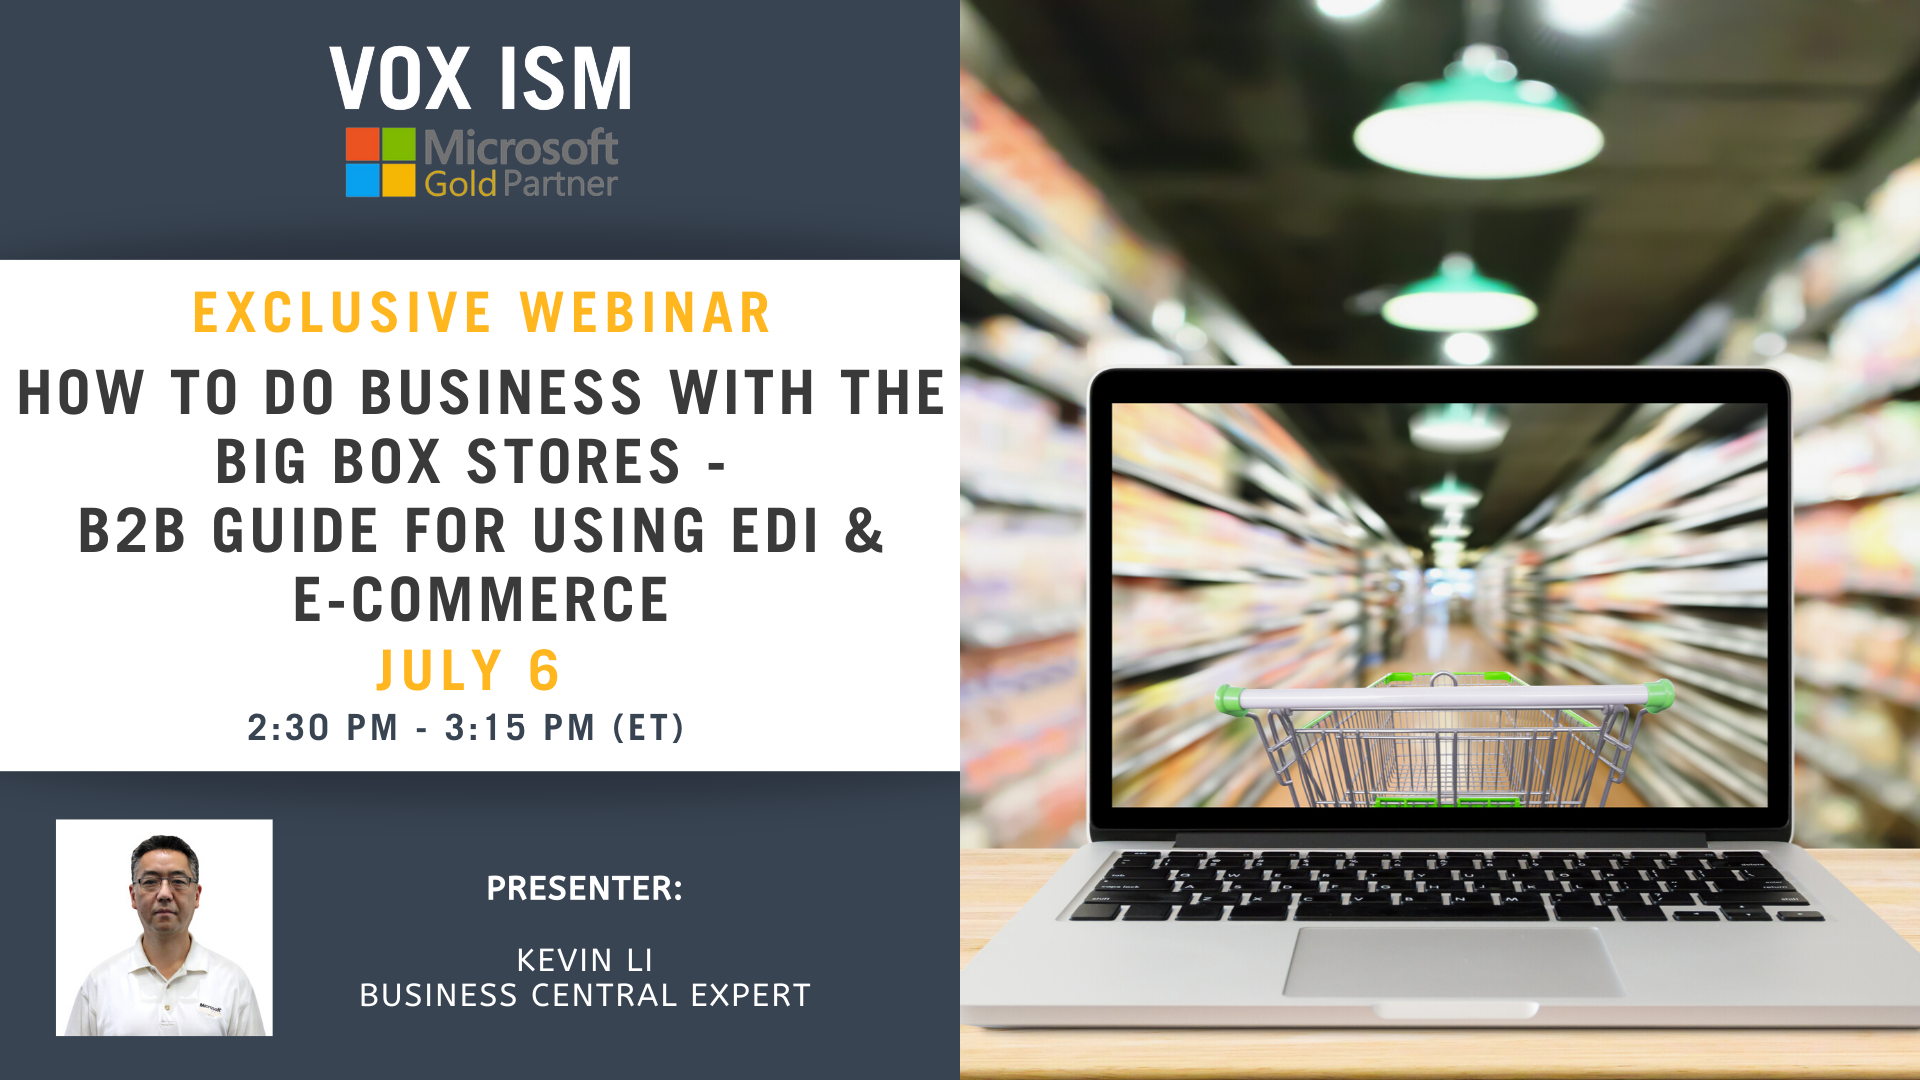 How to do business with the big box stores - B2B Guide for Using EDI & e-Commerce - July 6 - Webinar - VOX ISM